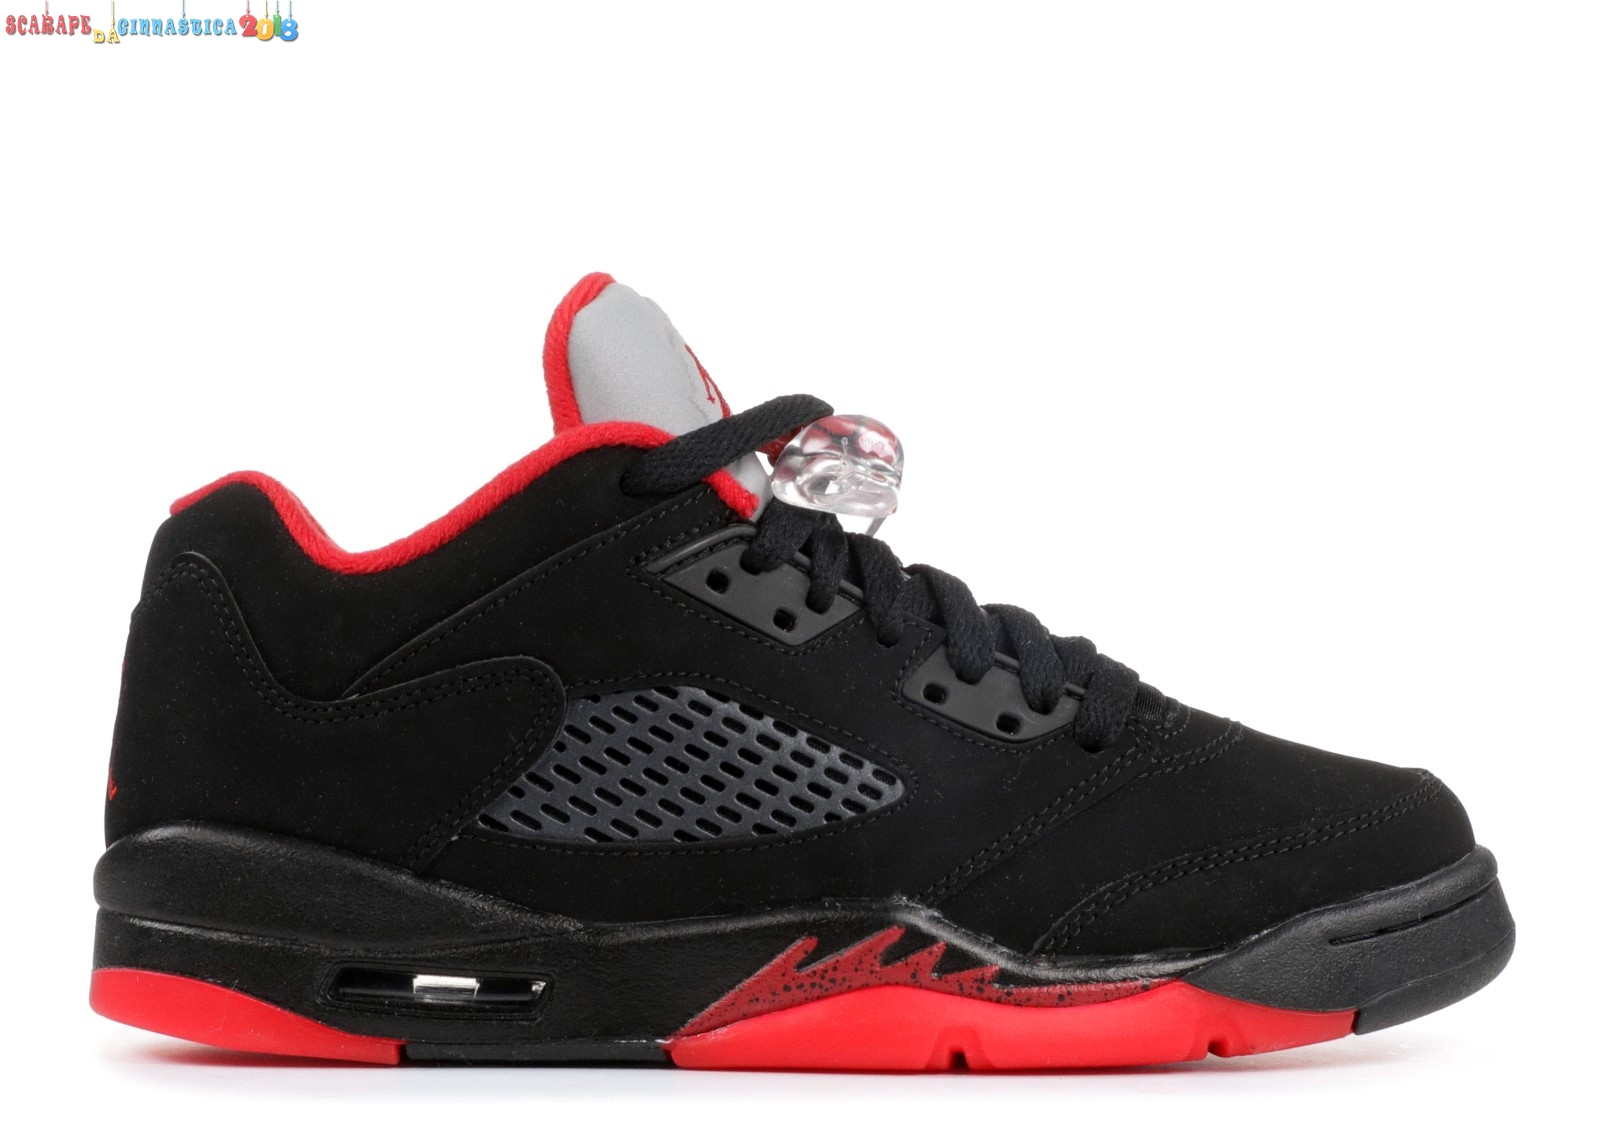 "Replica Air Jordan 5 Retro Low (Gs) ""Alternate 90"" Nero Rosso (314338-001) - Scarpe da basket"